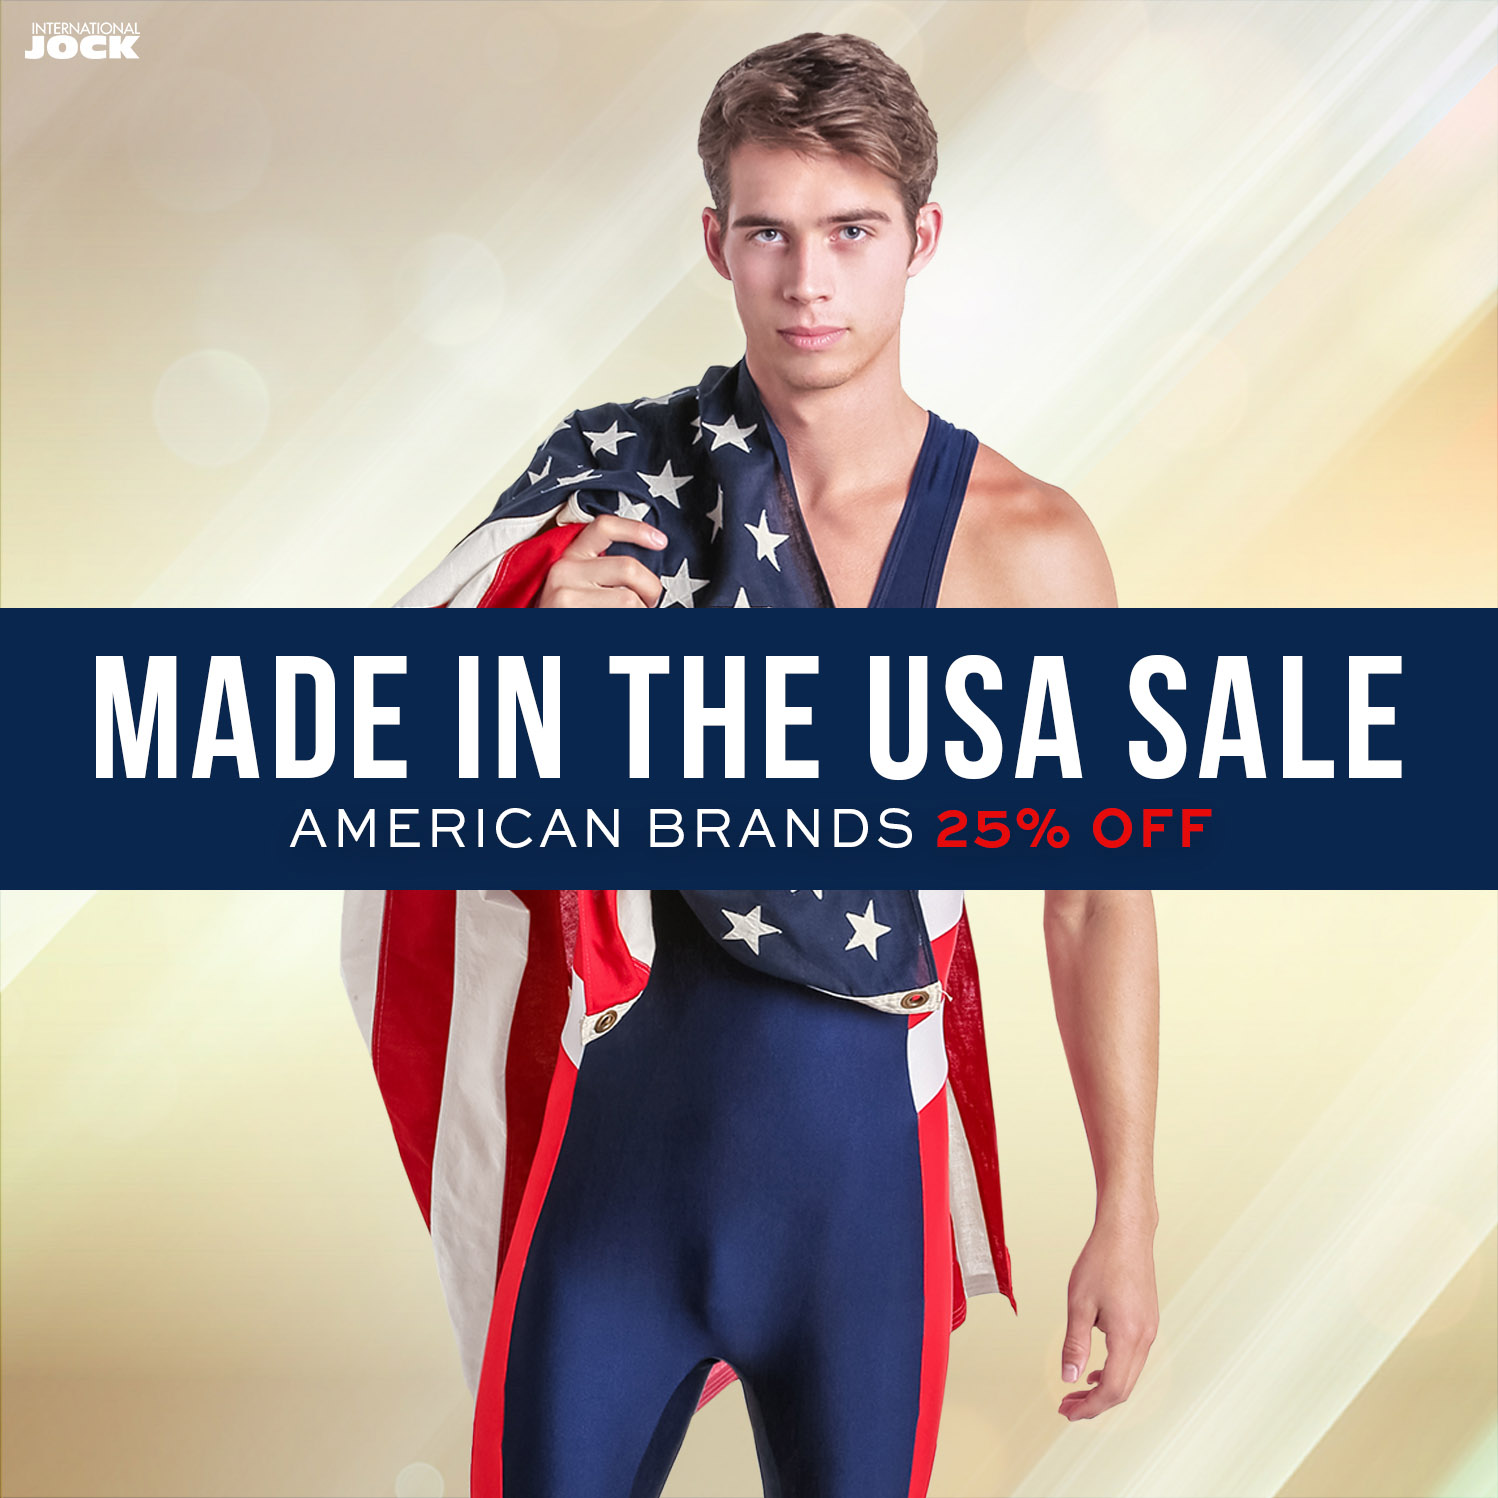 """Made in the USA"""" Sale at International Jock Supports American Brands"""